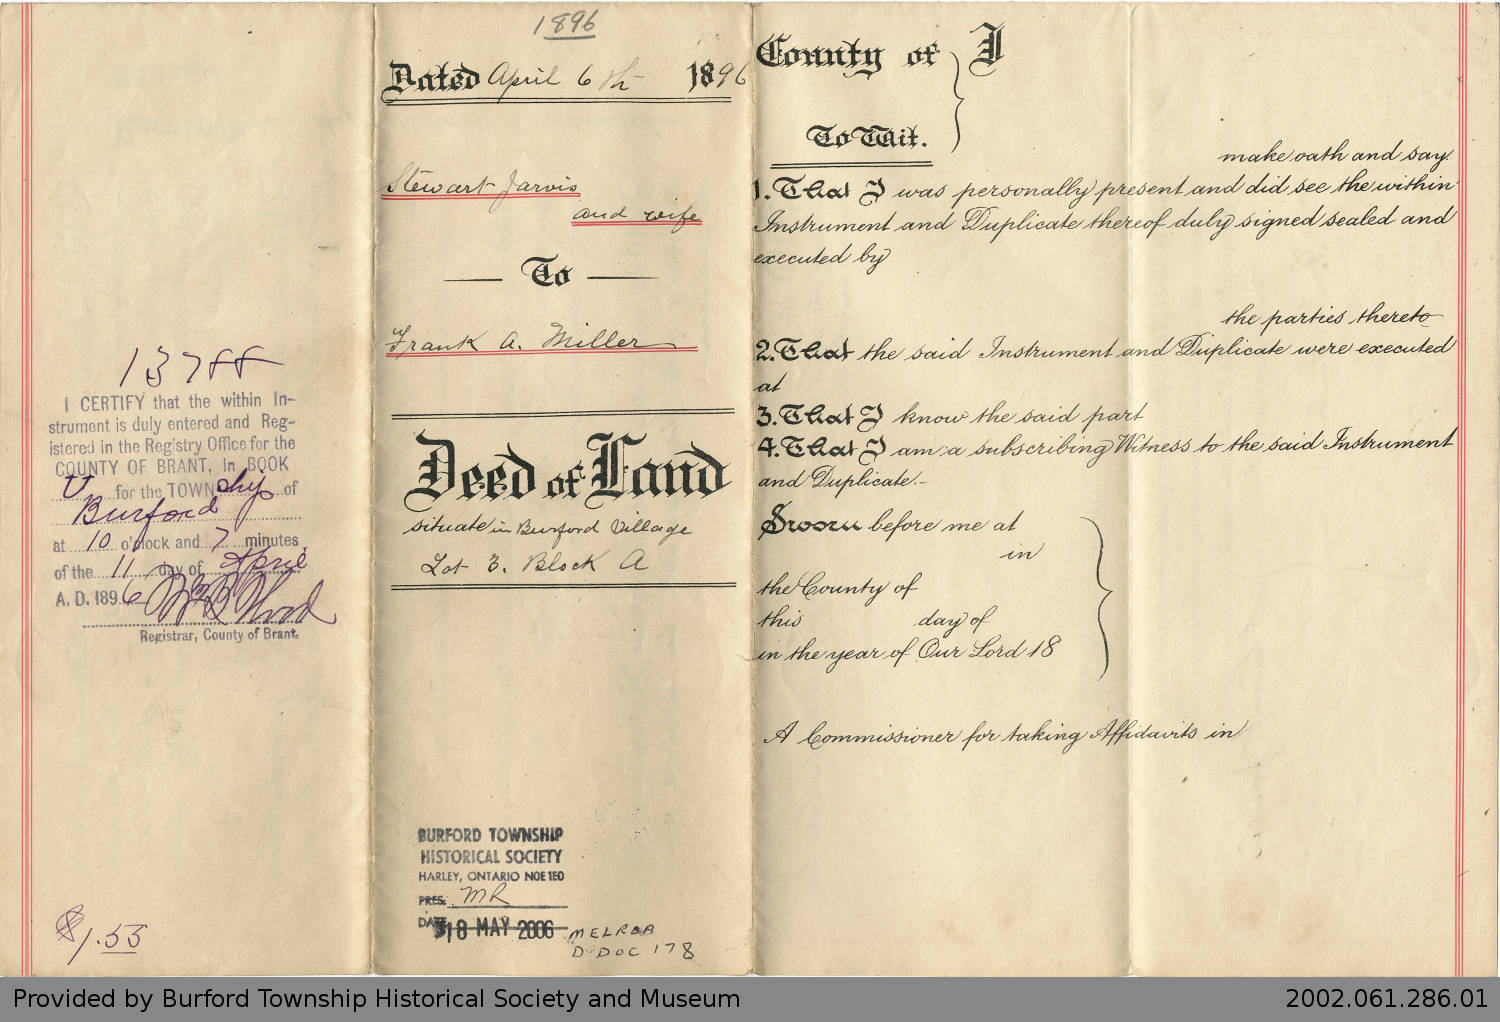 Full Image View: Deed of Land Transfer from Stewart Jarvis